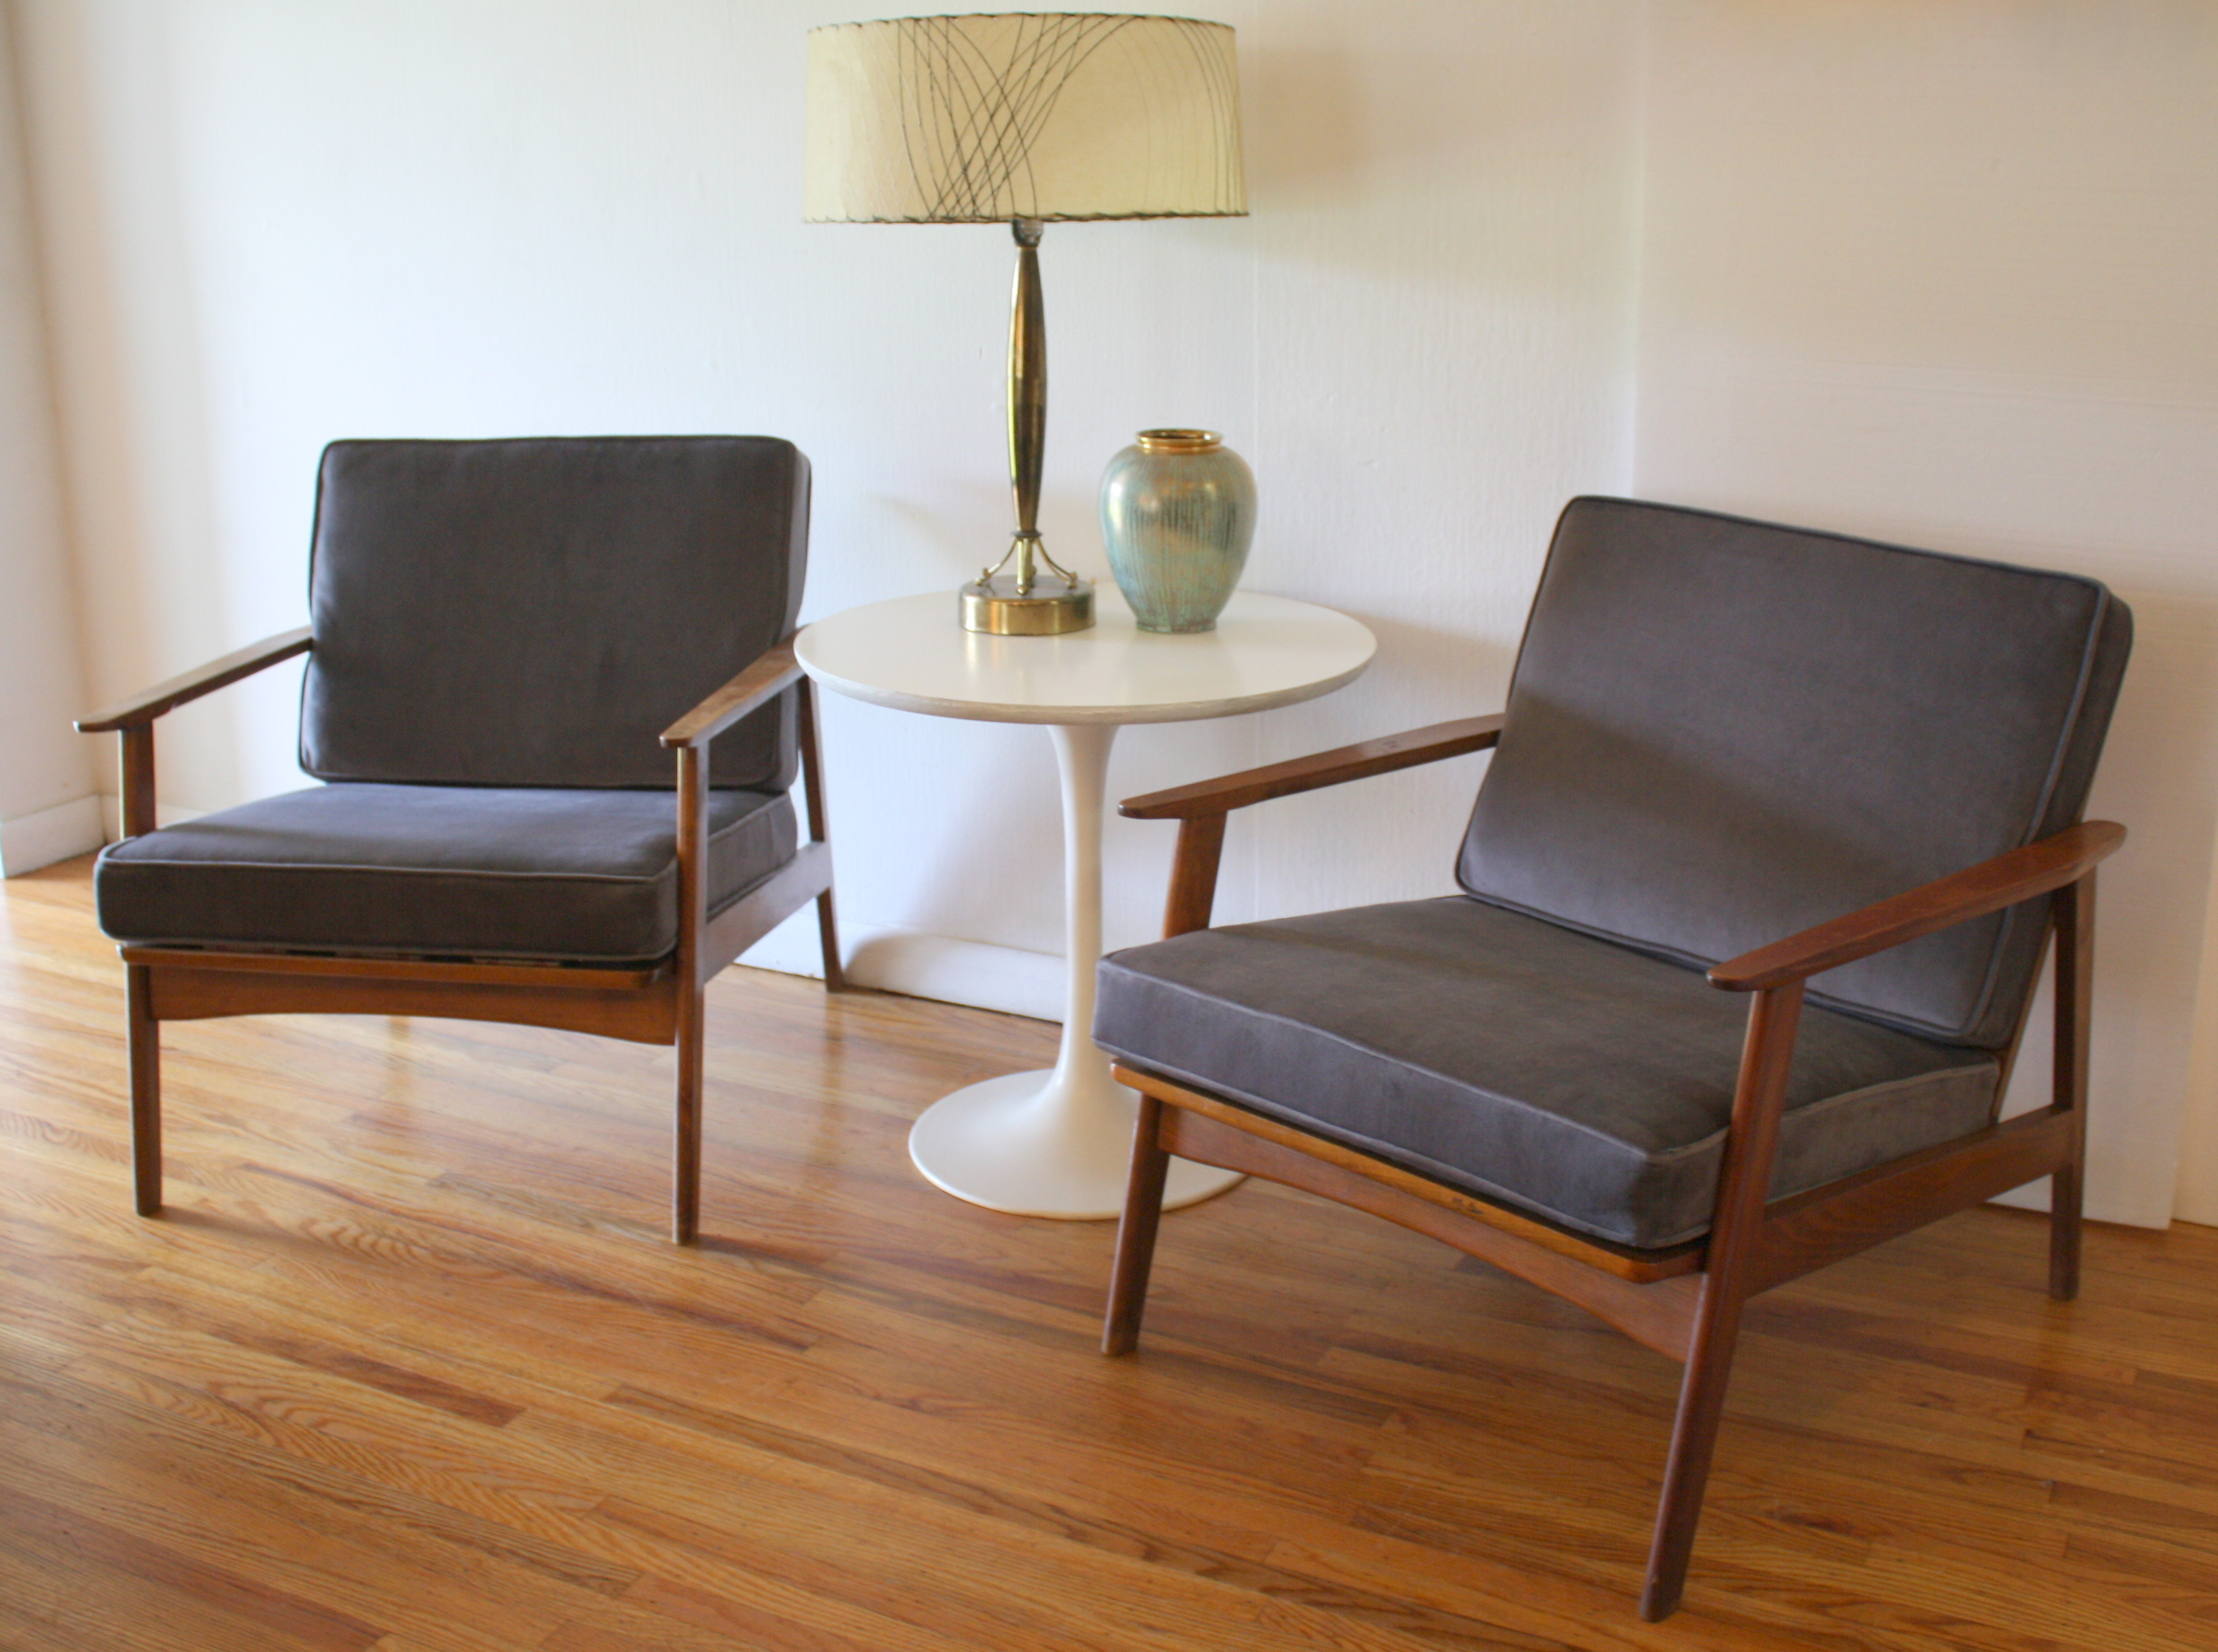 chairs  picked vintage - mcm elephant gray velvet arm chairs with tulip base side table